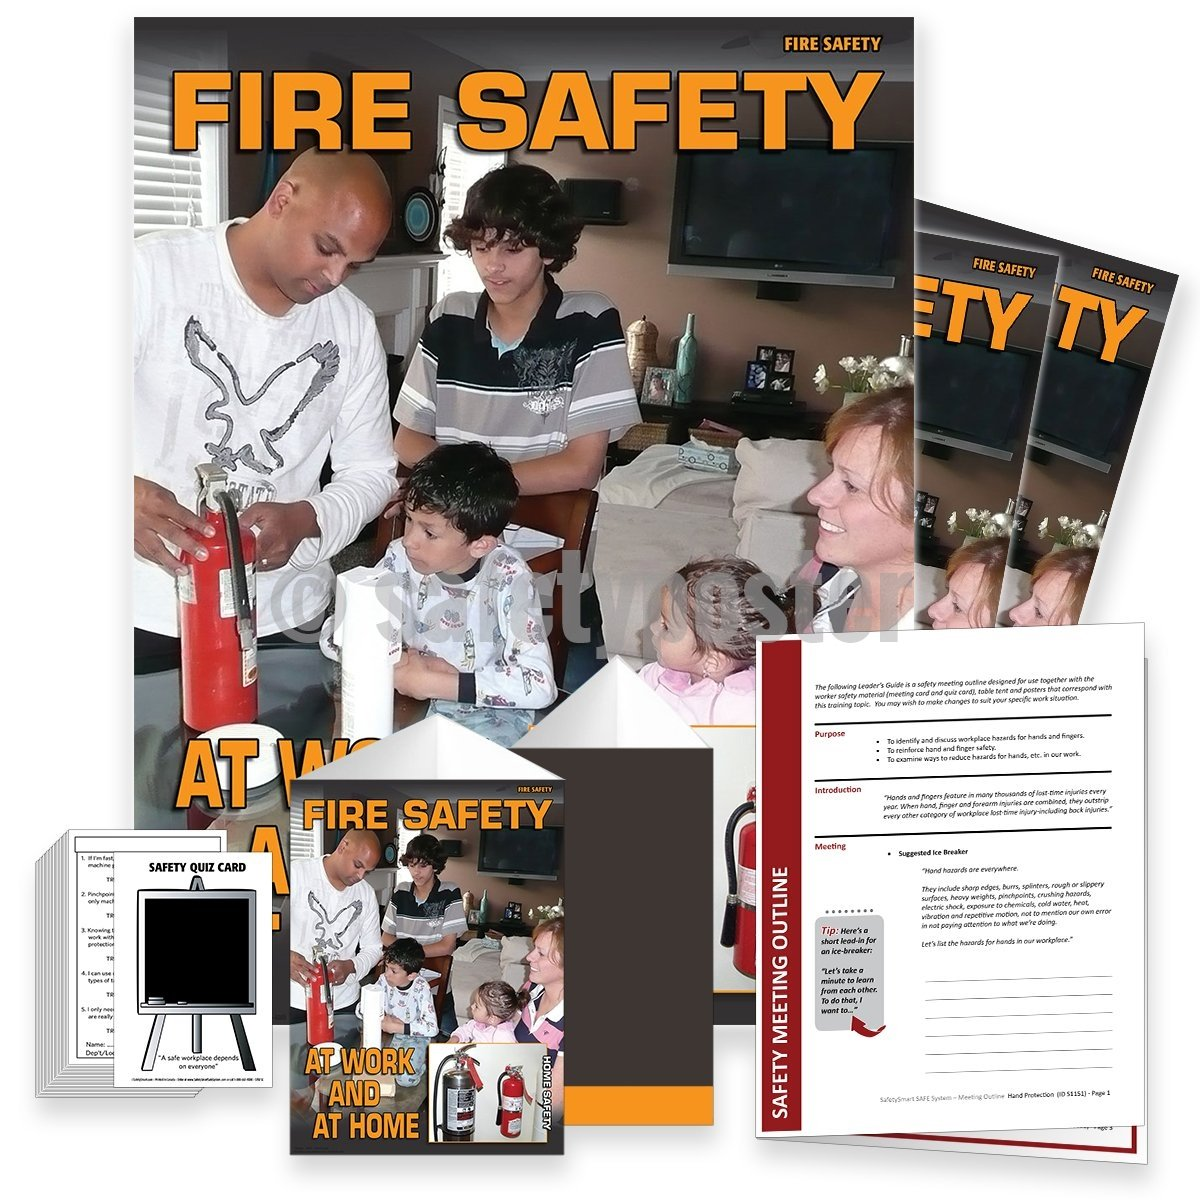 Safety Meeting Kit - Fire At Work And Home Kits